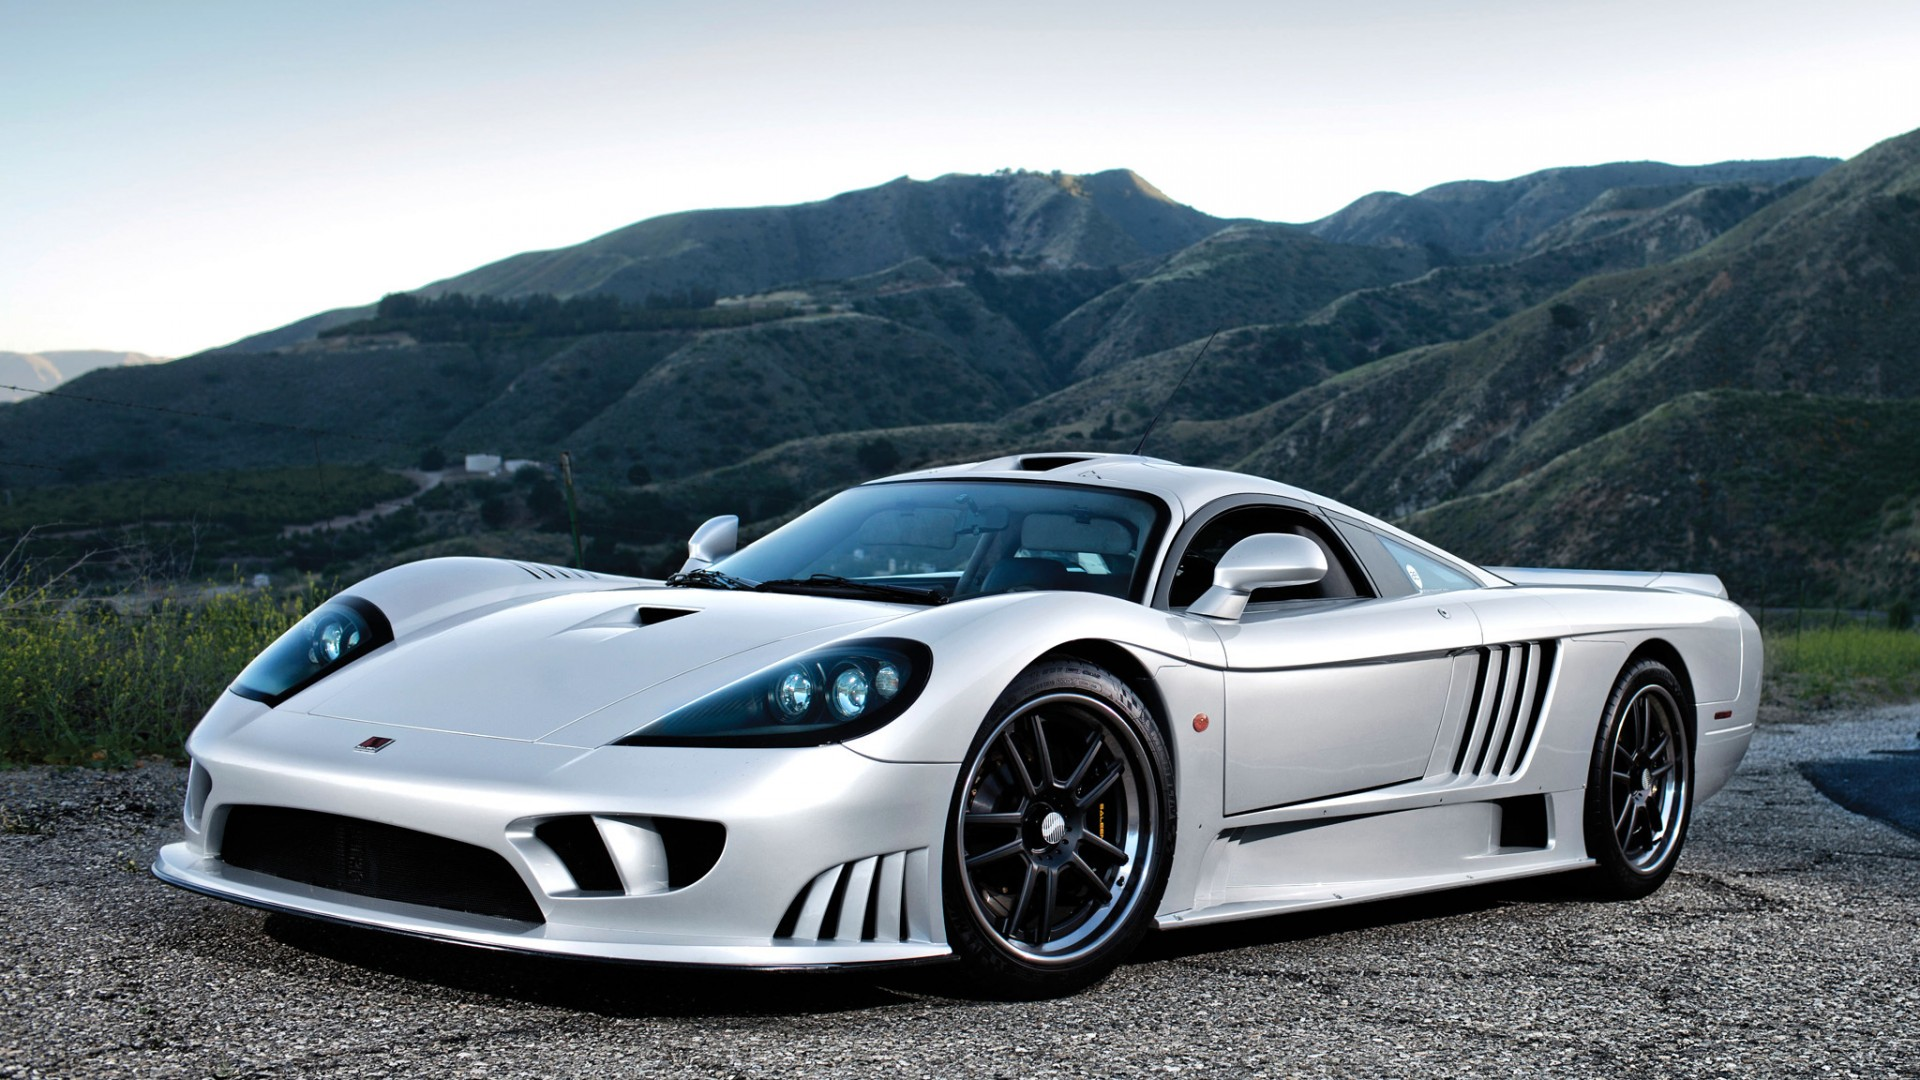 DMV 2005 Saleen S7 Twin Turbo AUCTION ENDED Archive OwlGaming